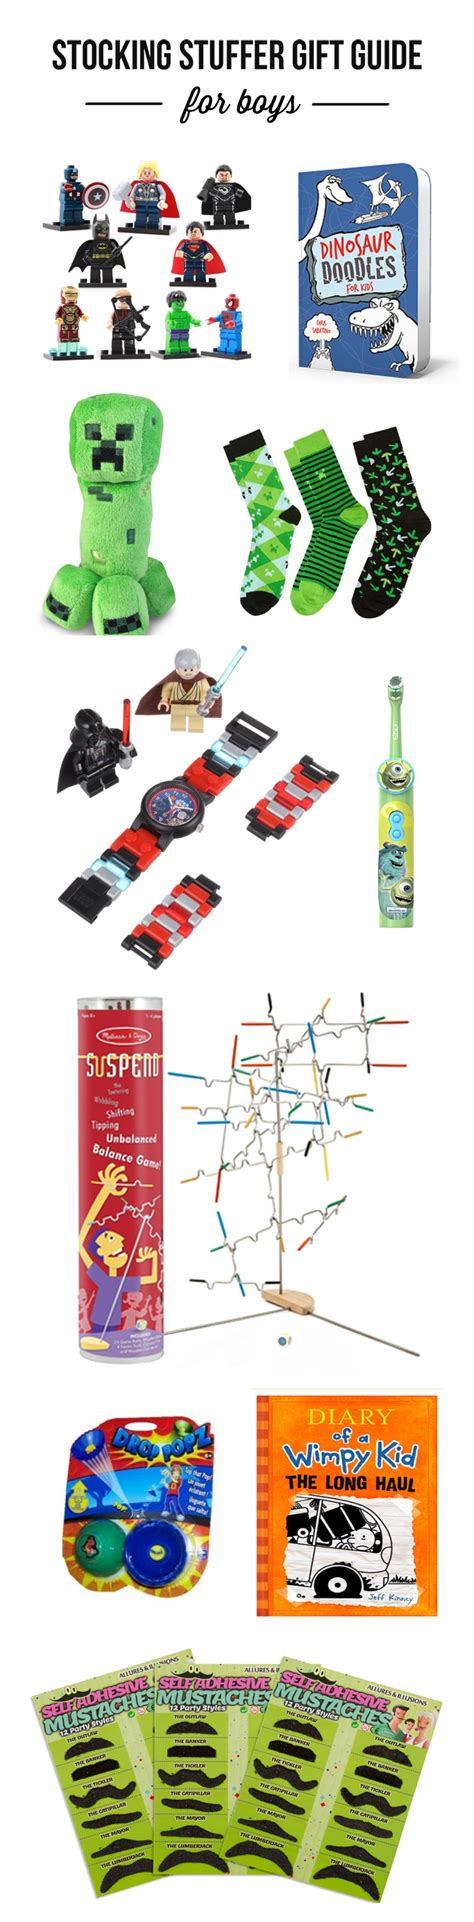 coolchristmas ideas boys 12 ultimate stuffer gift guide for of all ages